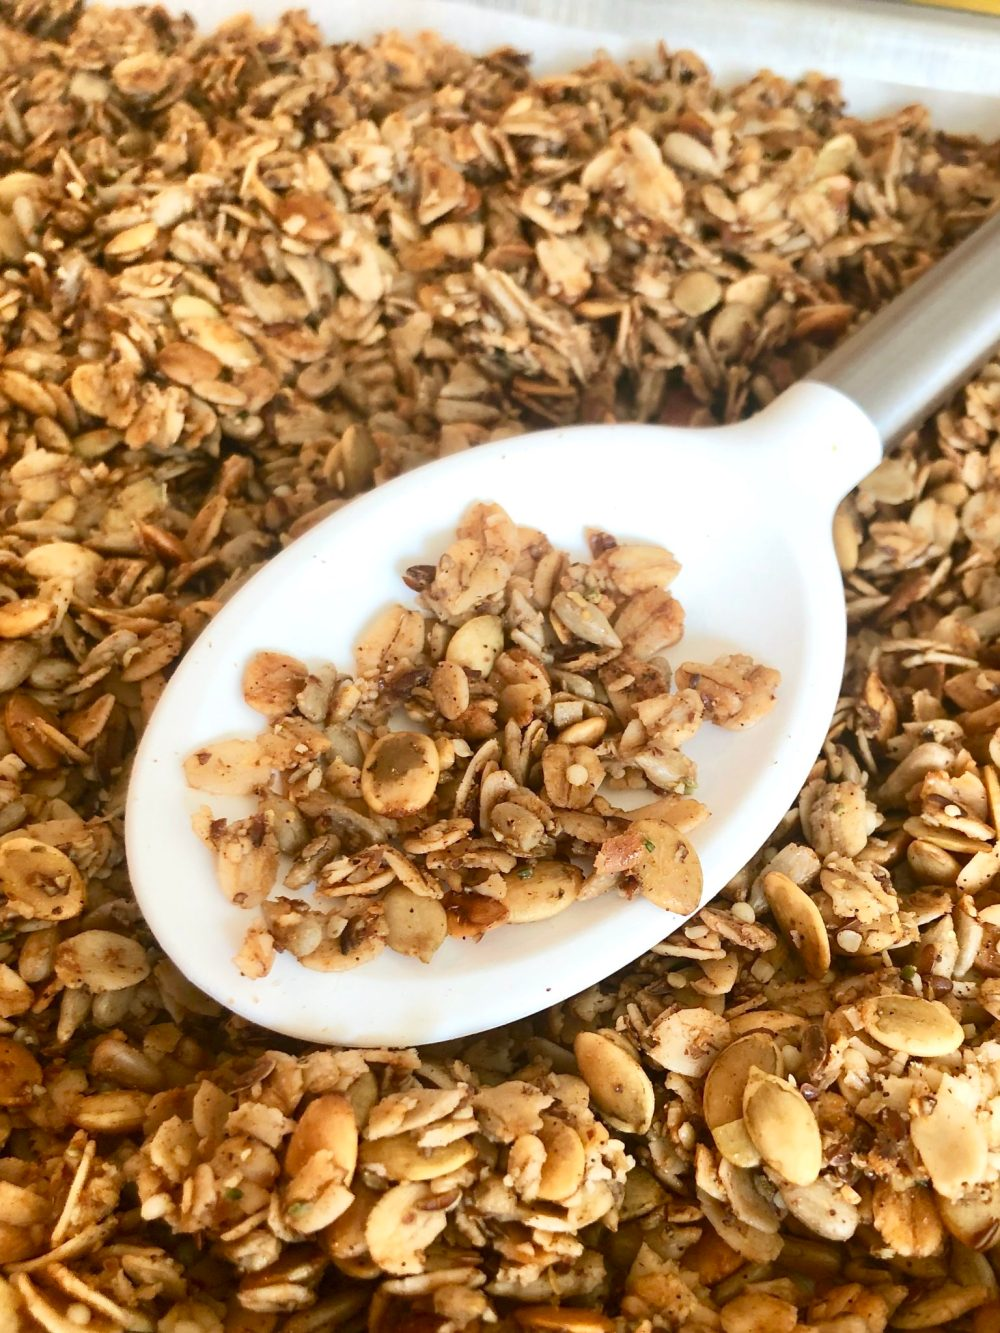 I gave my latest batch of LOLITA'S LOW SUGAR GRANOLA some fall flair by adding a half teaspoon of freshly ground nutmeg and a quarter teaspoon of pumpkin pie spice to the regular recipe.